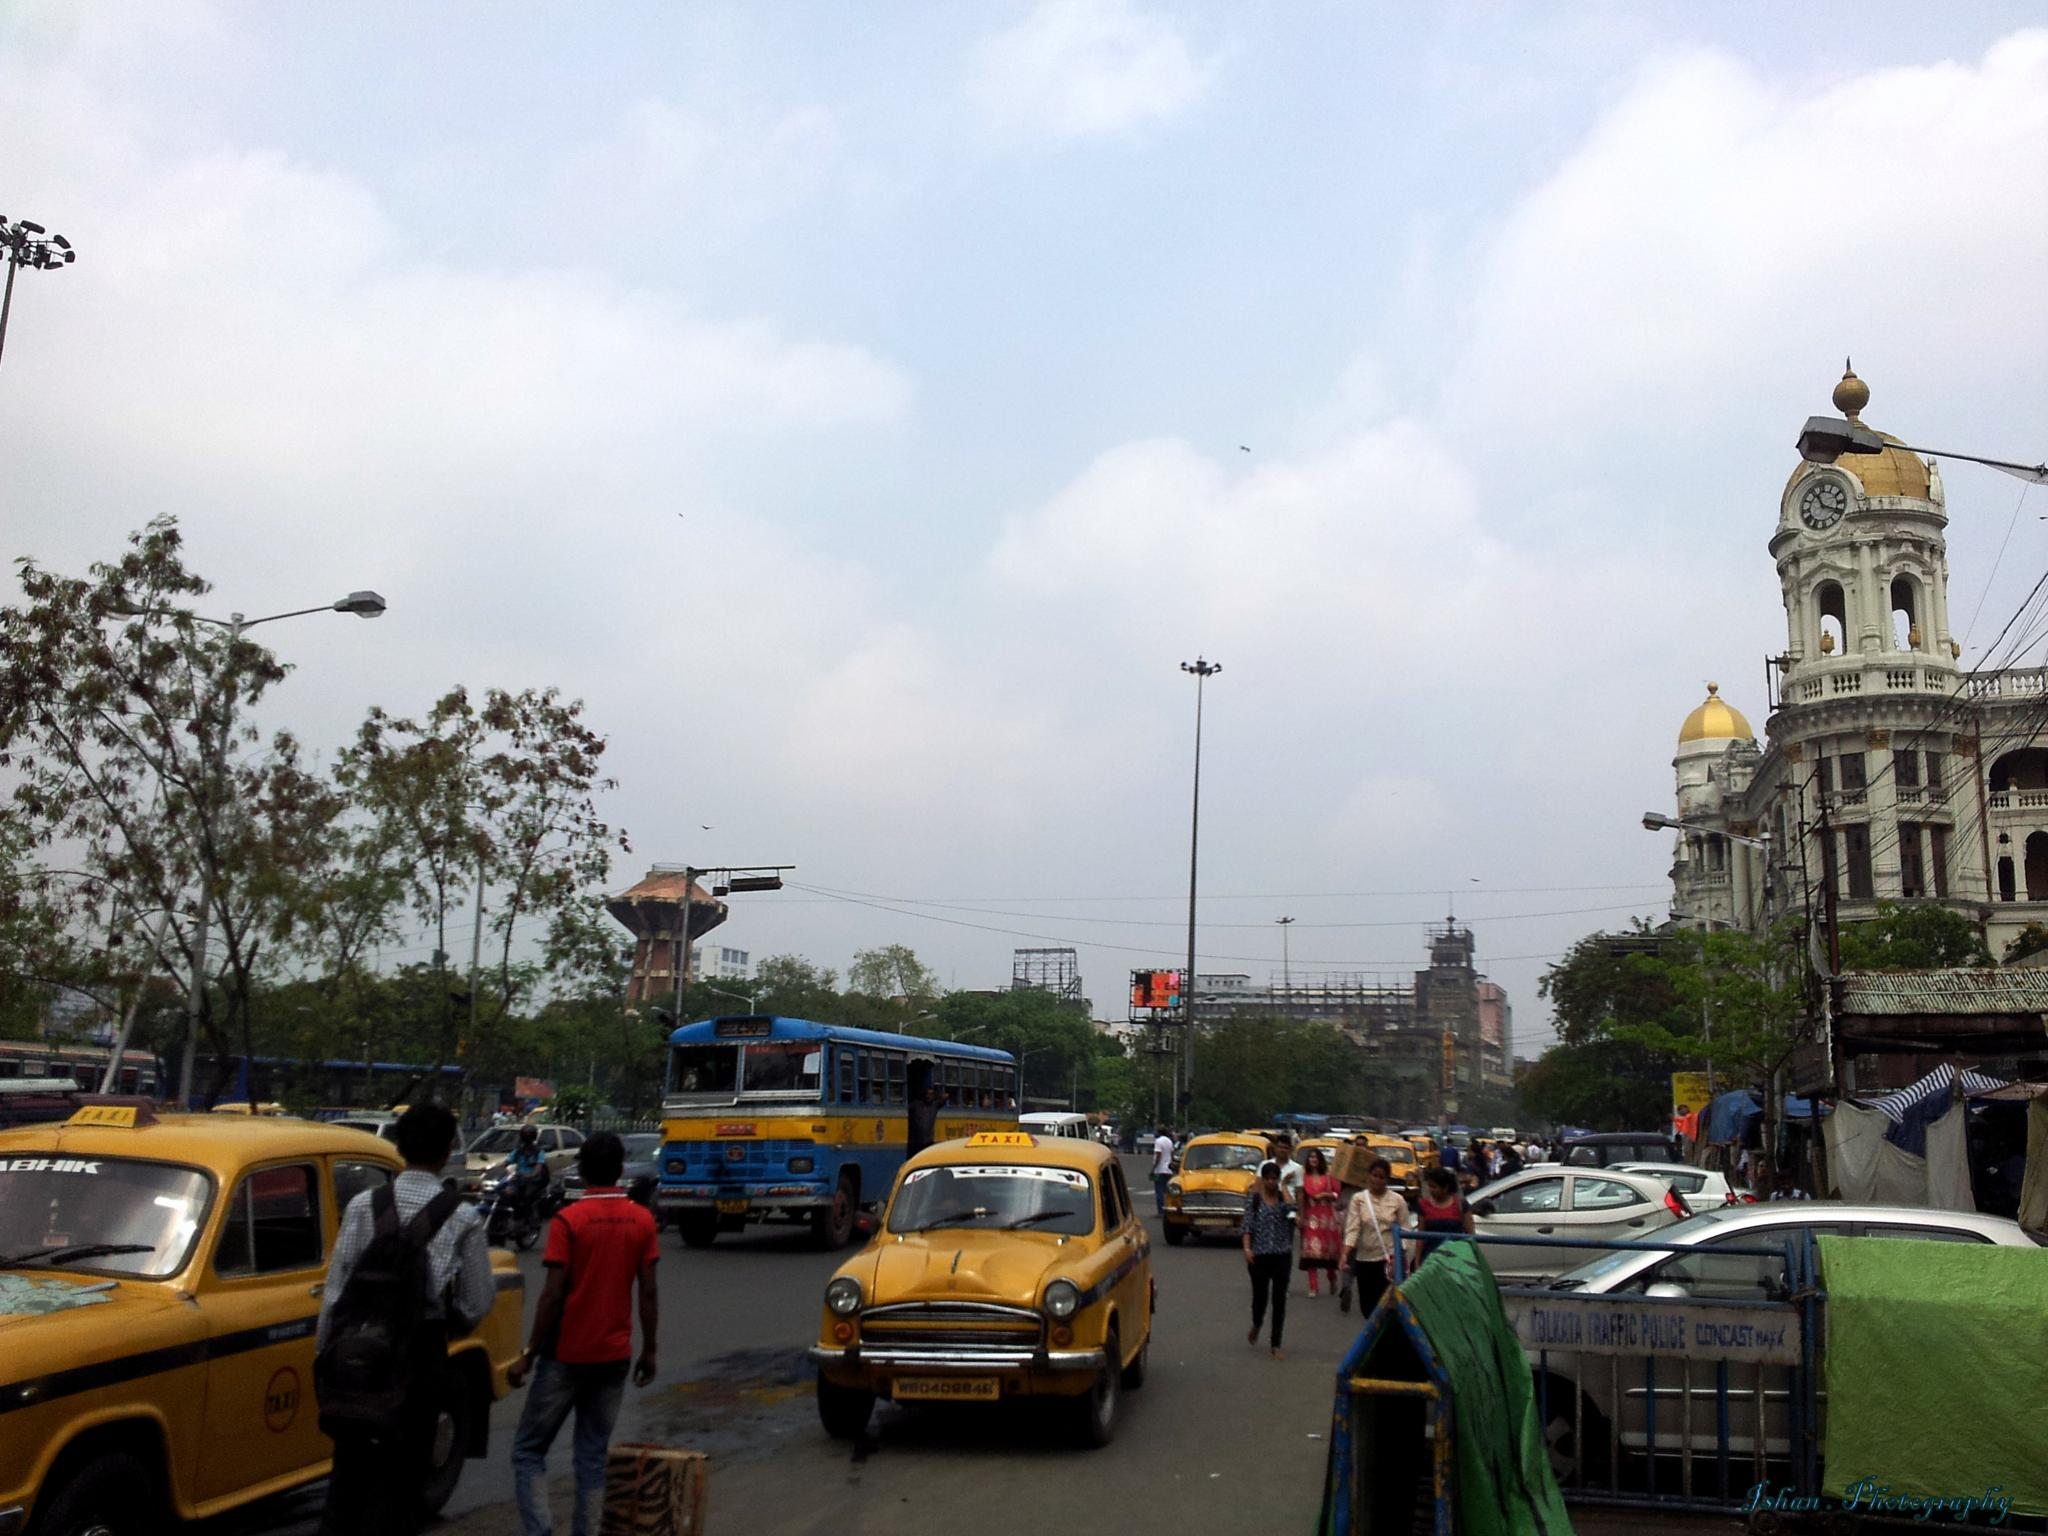 A Busiest Place by Ishan Chatterjee